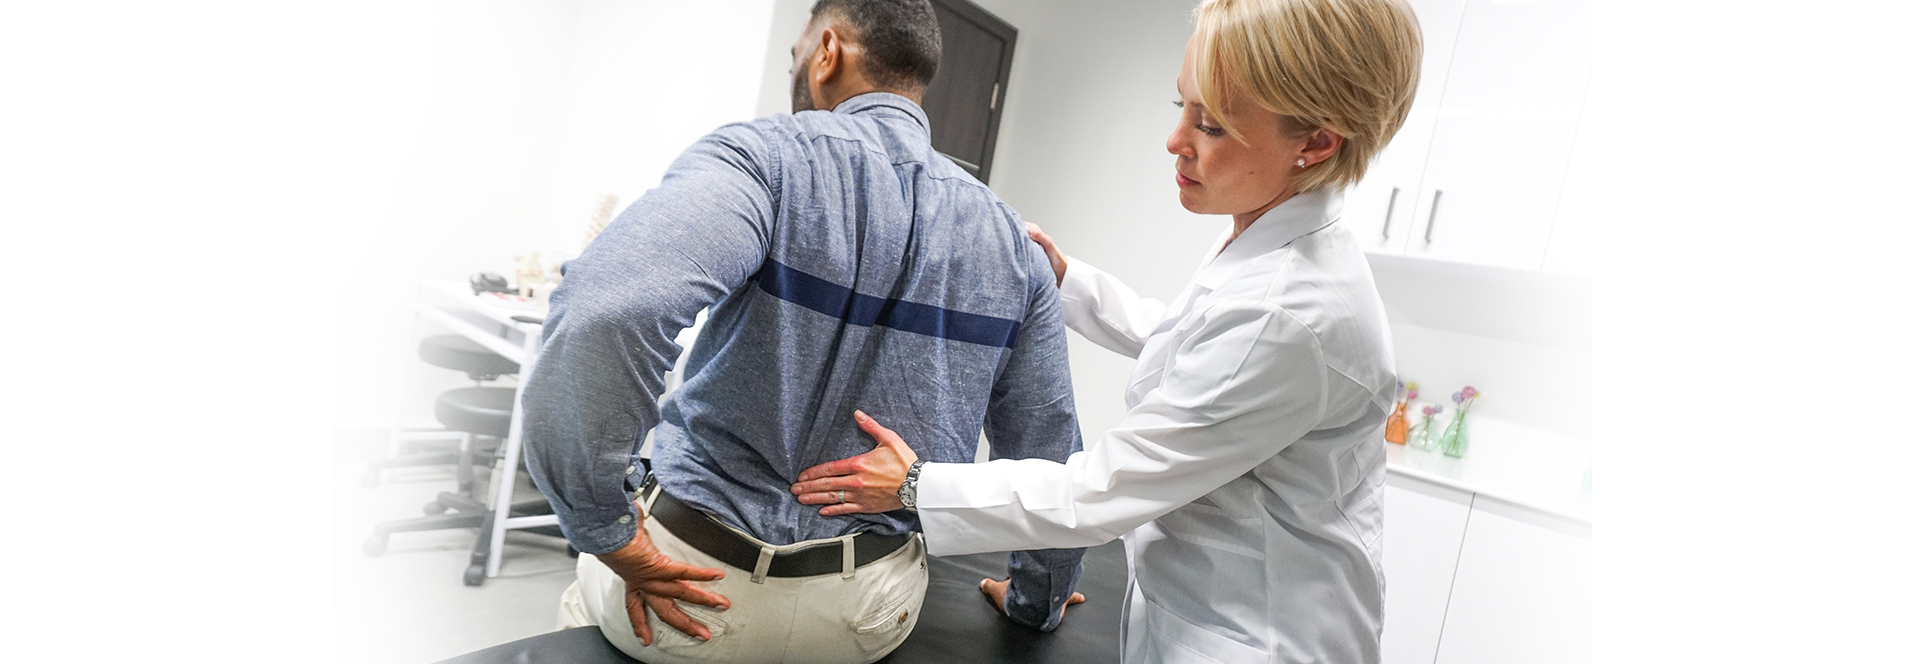 A neck and back pain clinic helps patients dealing with chronic pain issues. Which back and neck pain clinic should you choose? At Pain Treatment Specialists, our top-rated back centers in NY and NJ help patients return to a pain-free life with minimally-invasive back pain treatments.